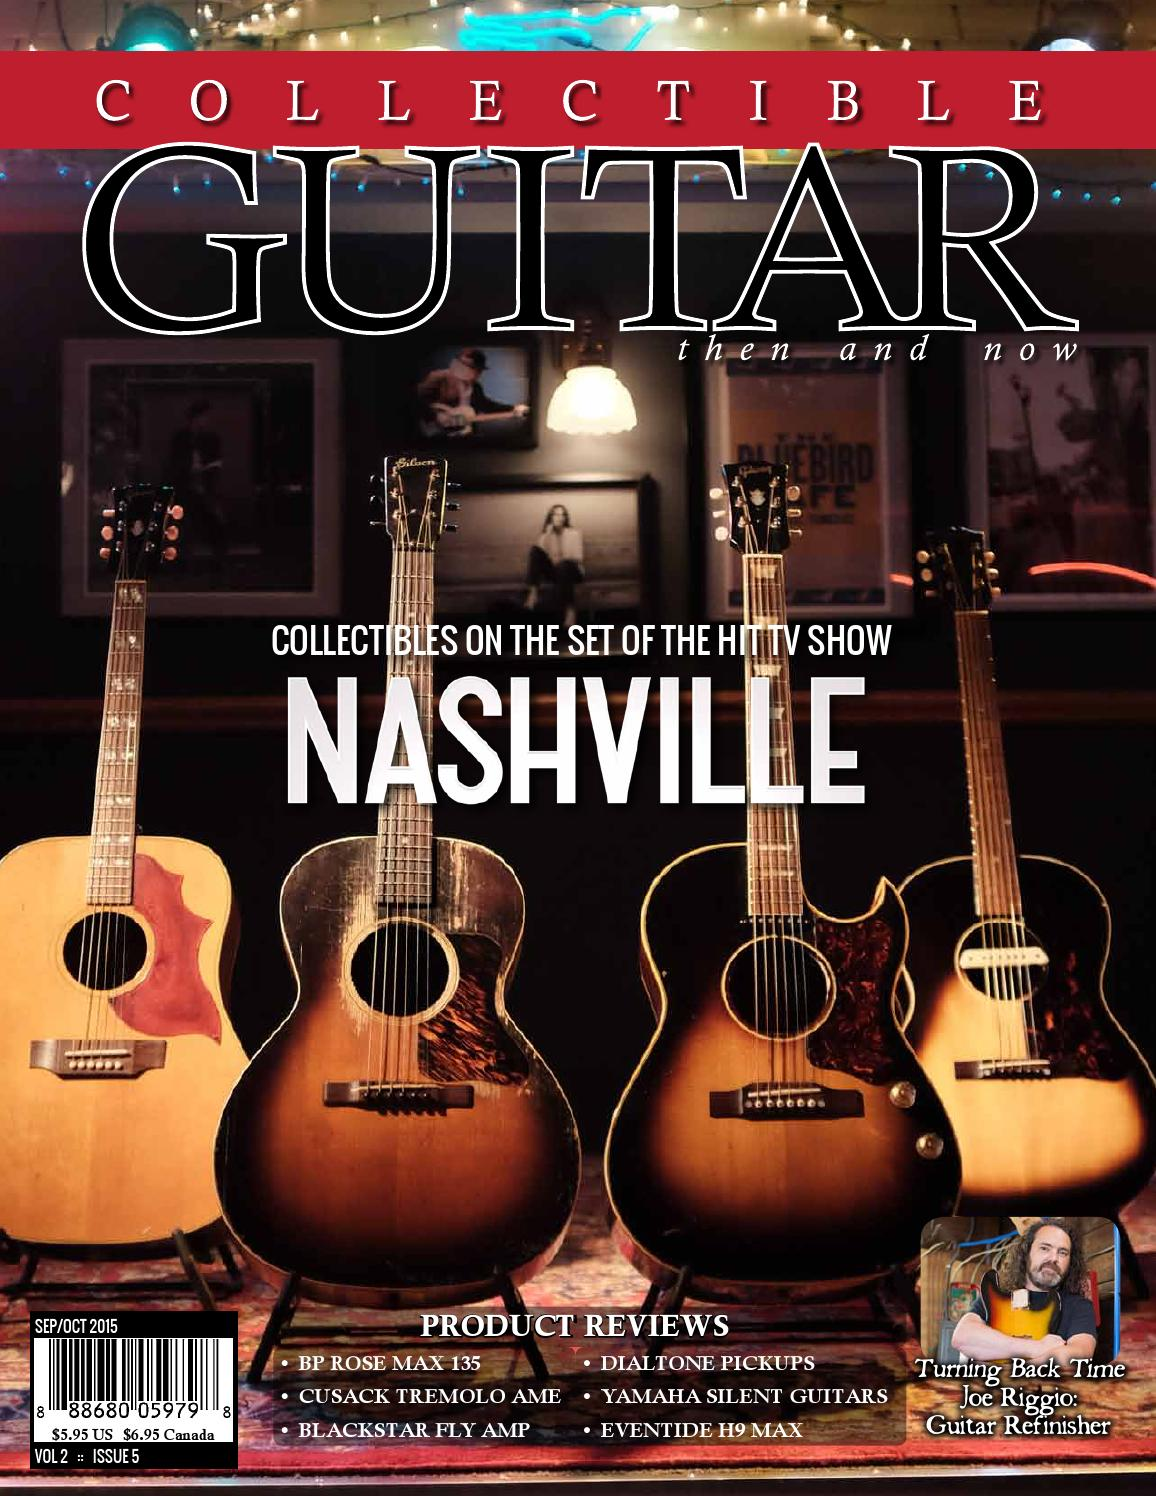 Collectible Guitar Magazine Then And Now Sepoct 2015 By